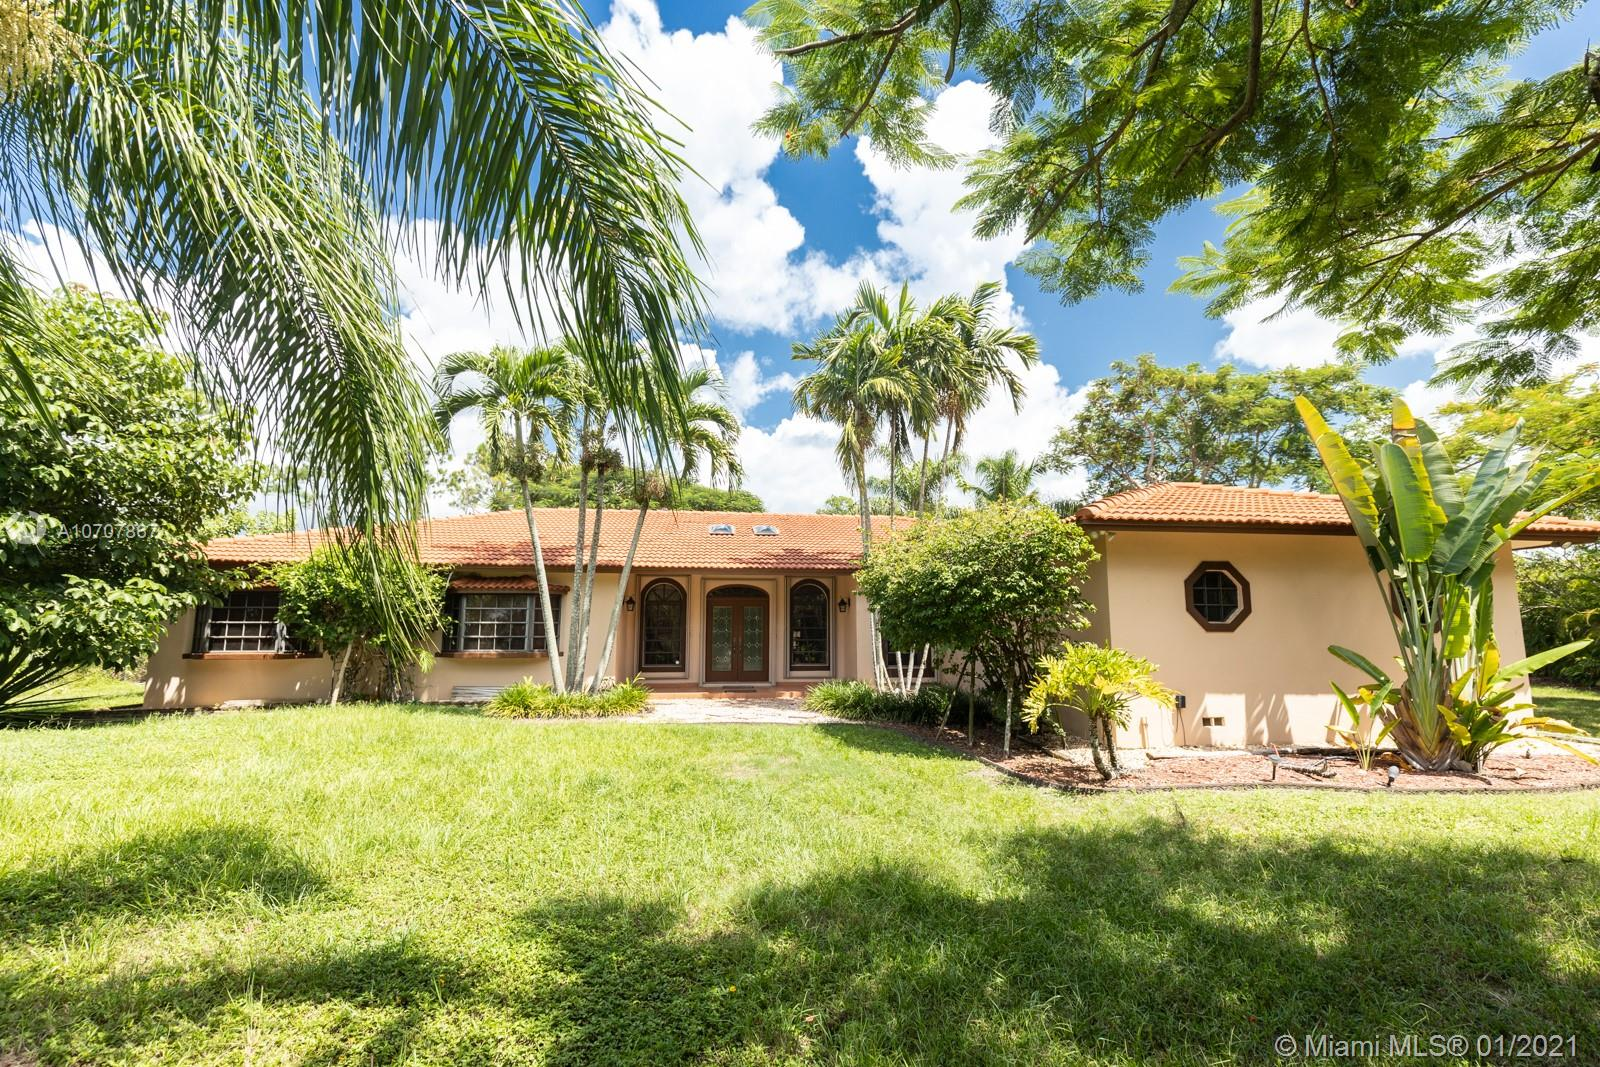 26871 SW 194 Ave Property Photo - Unincorporated Dade County, FL real estate listing